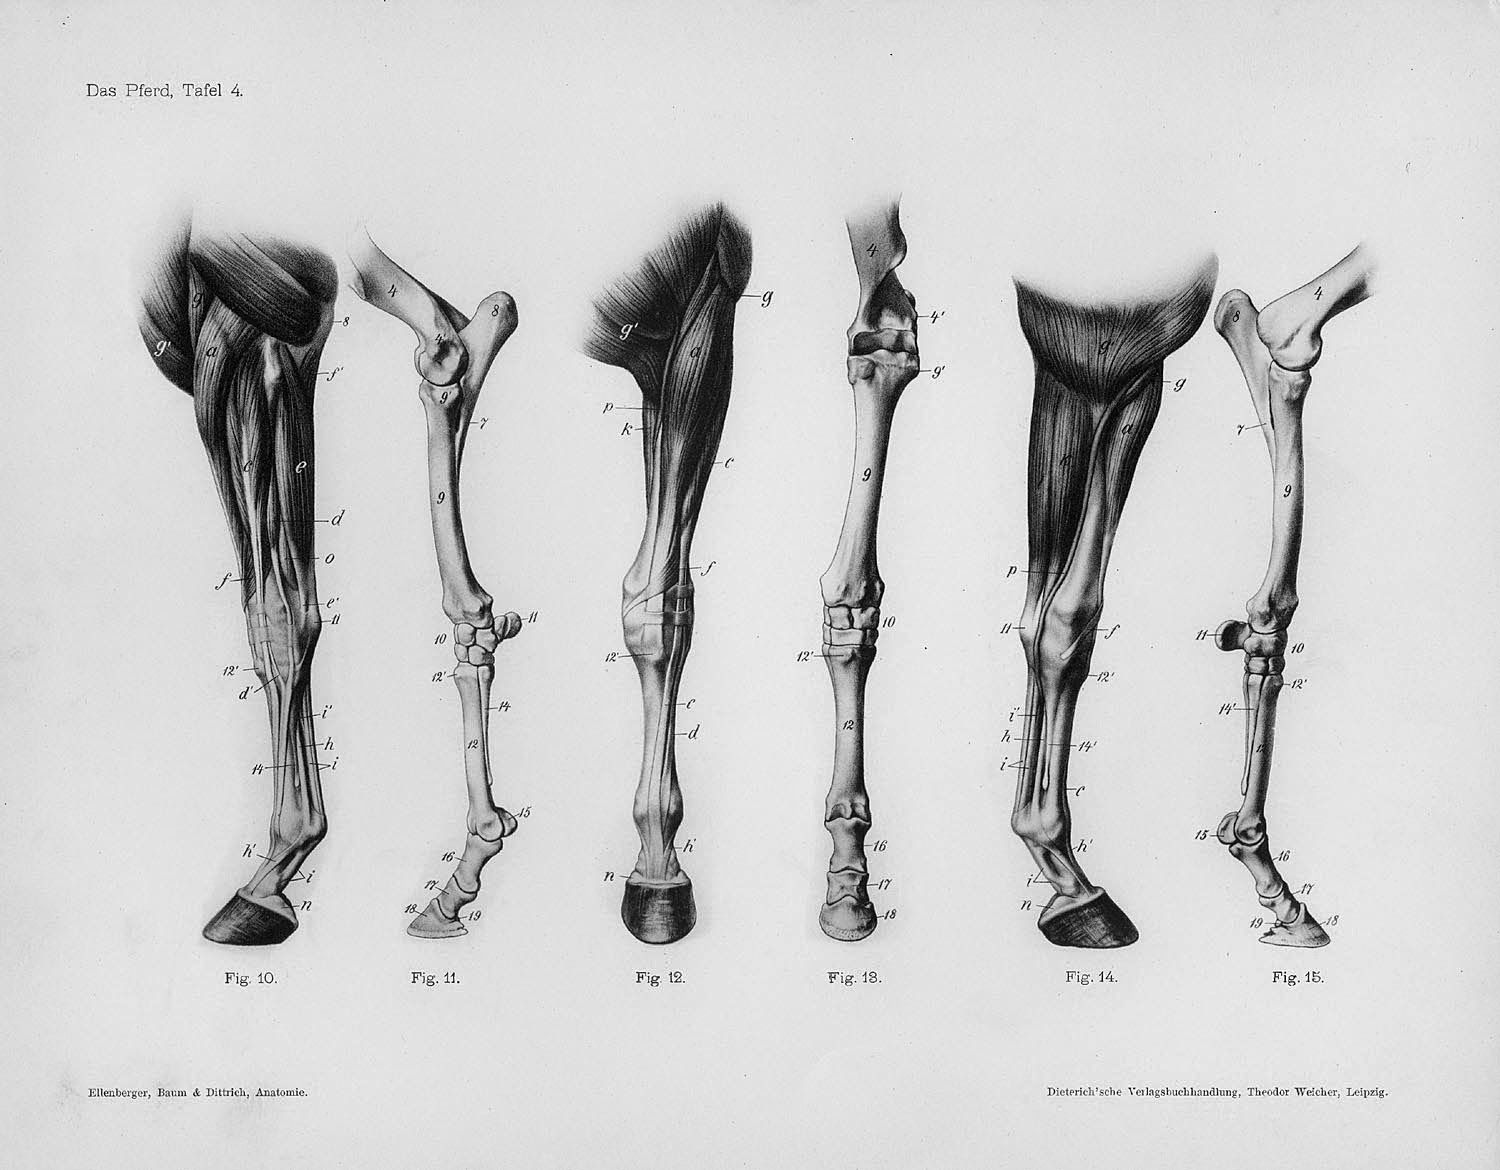 Pin by Kristy Meeuwissen on Horse anatomical | Pinterest | Horse ...